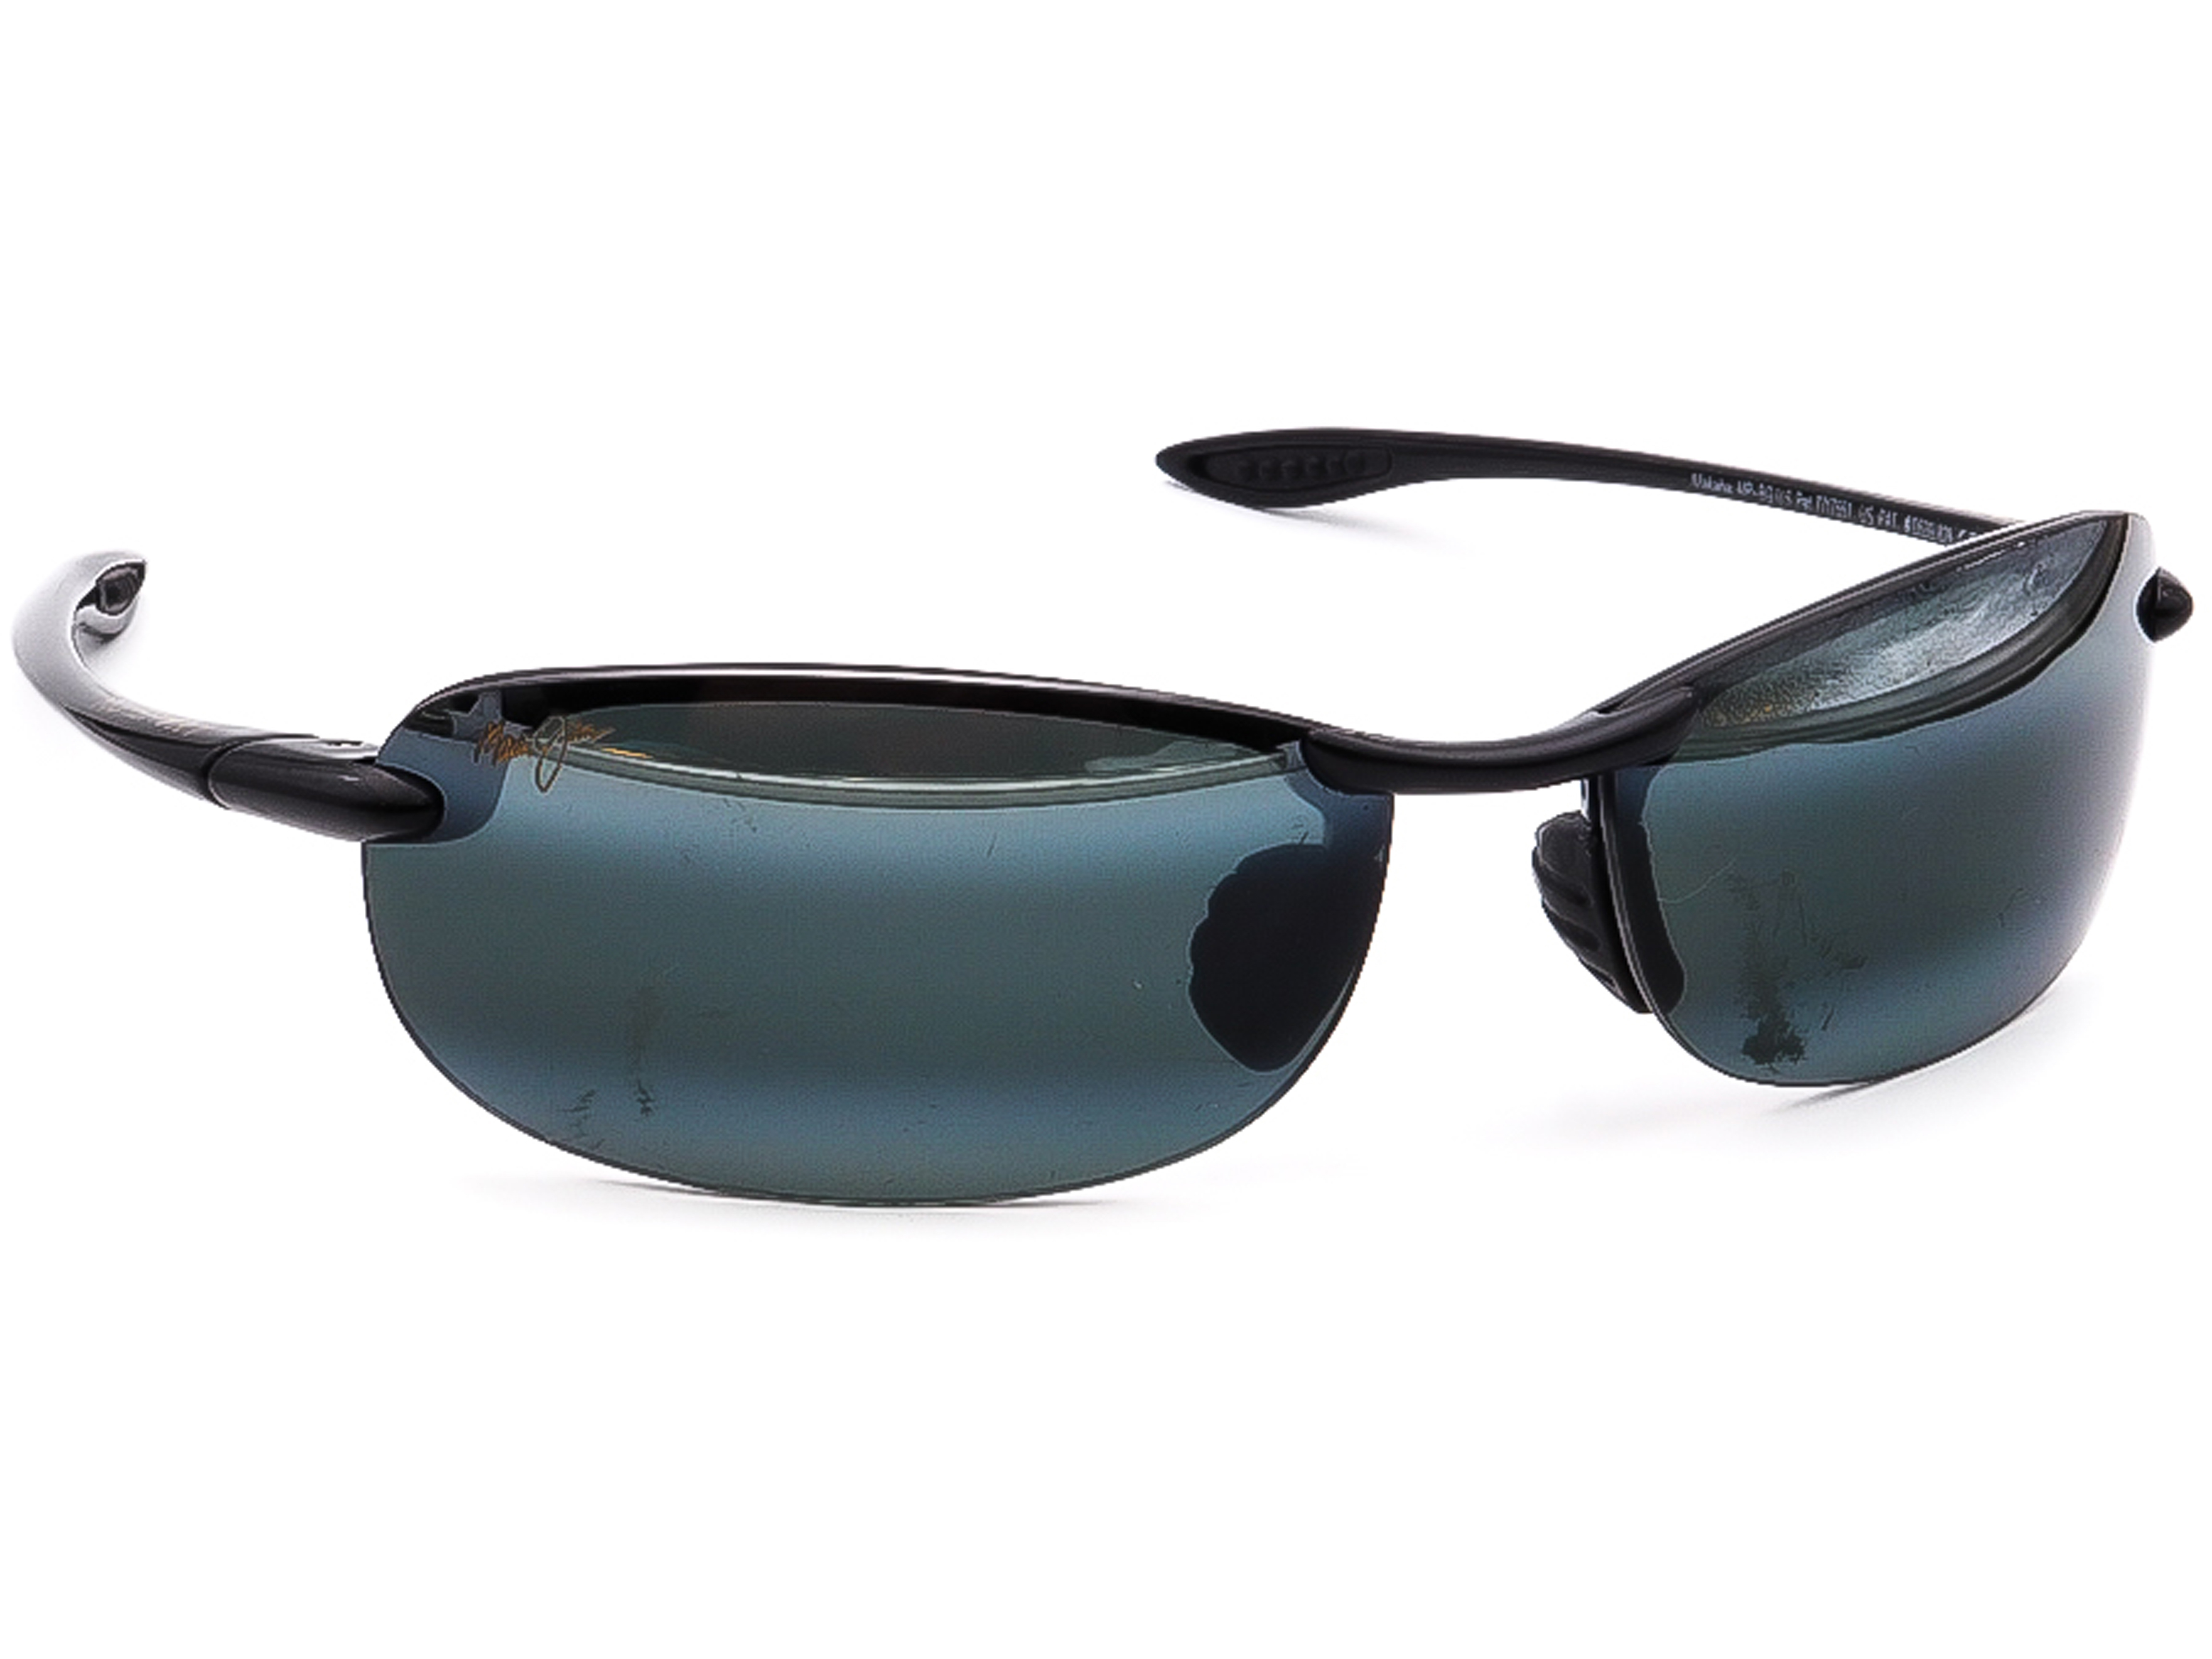 Maui Jim MJ-405-02 Makaha MP-BG Sunglasses Frame Only